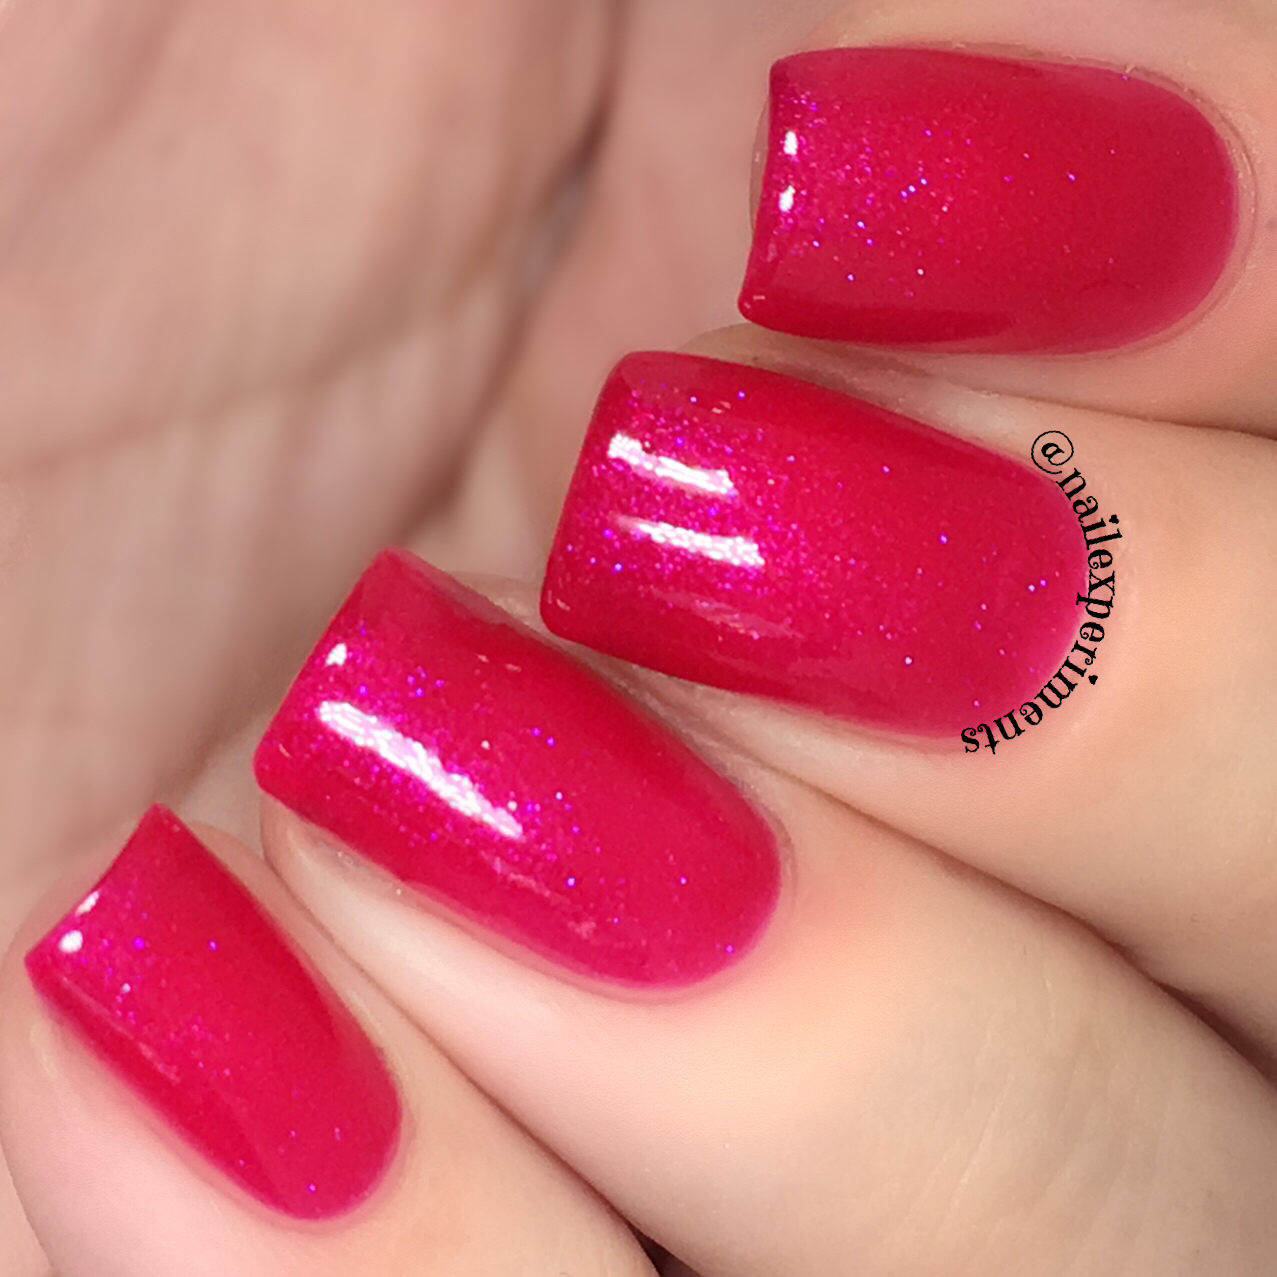 colors by llarowe late summer 2017 collection polish one crazy ass summer